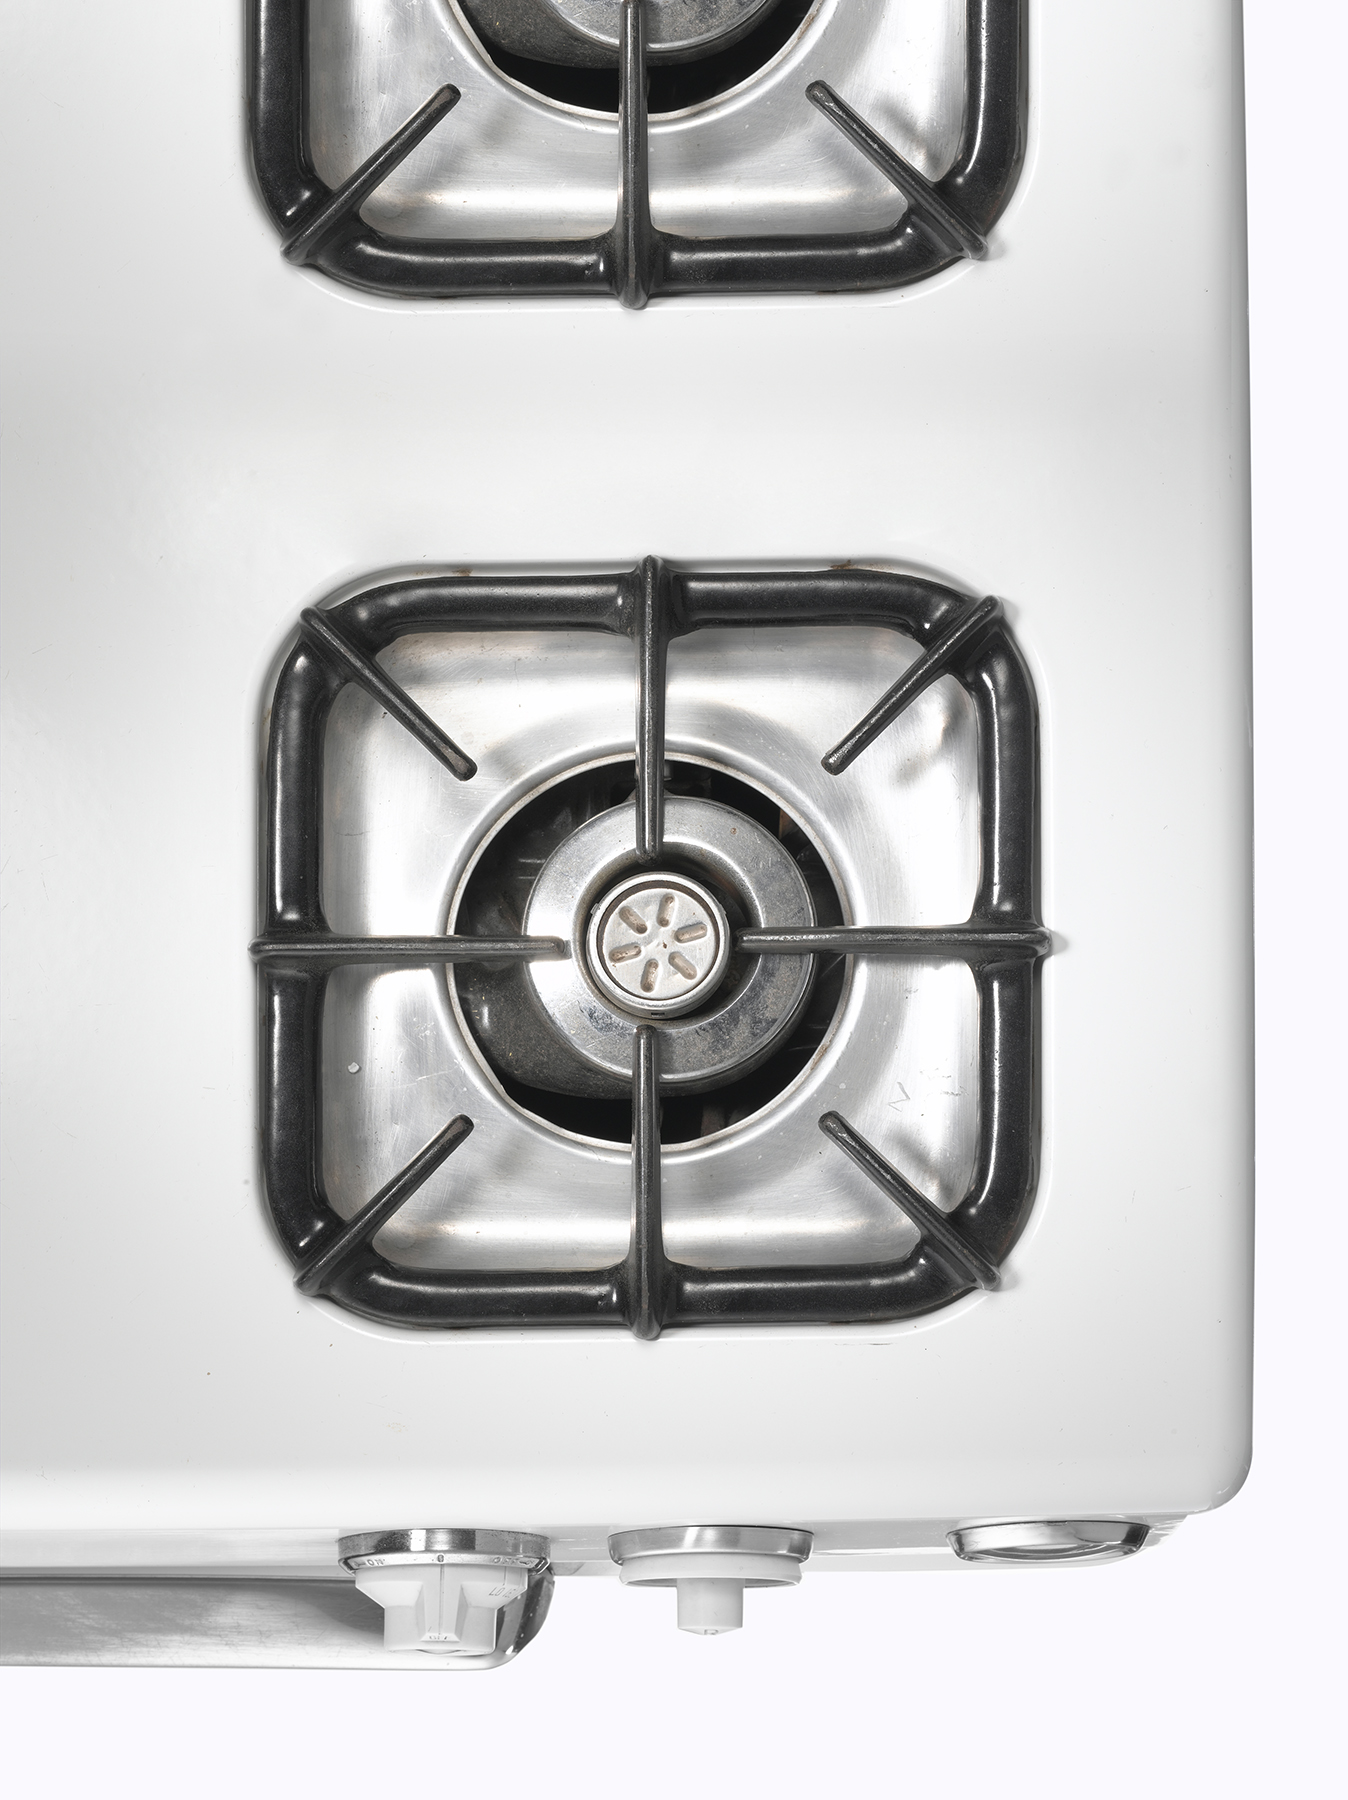 Stove burner, close up